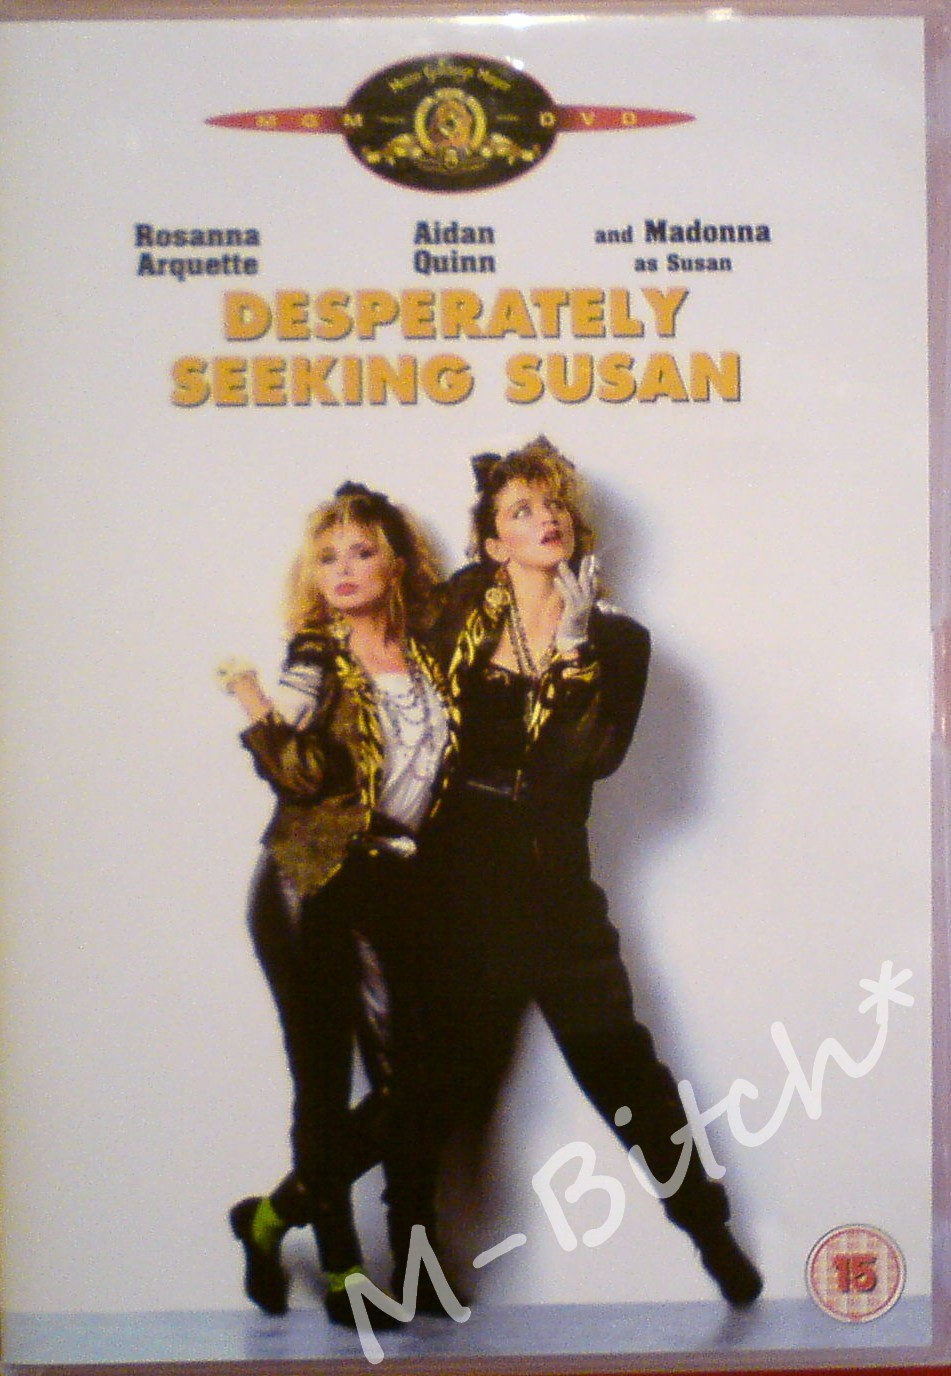 Desperately Seeking Suzan